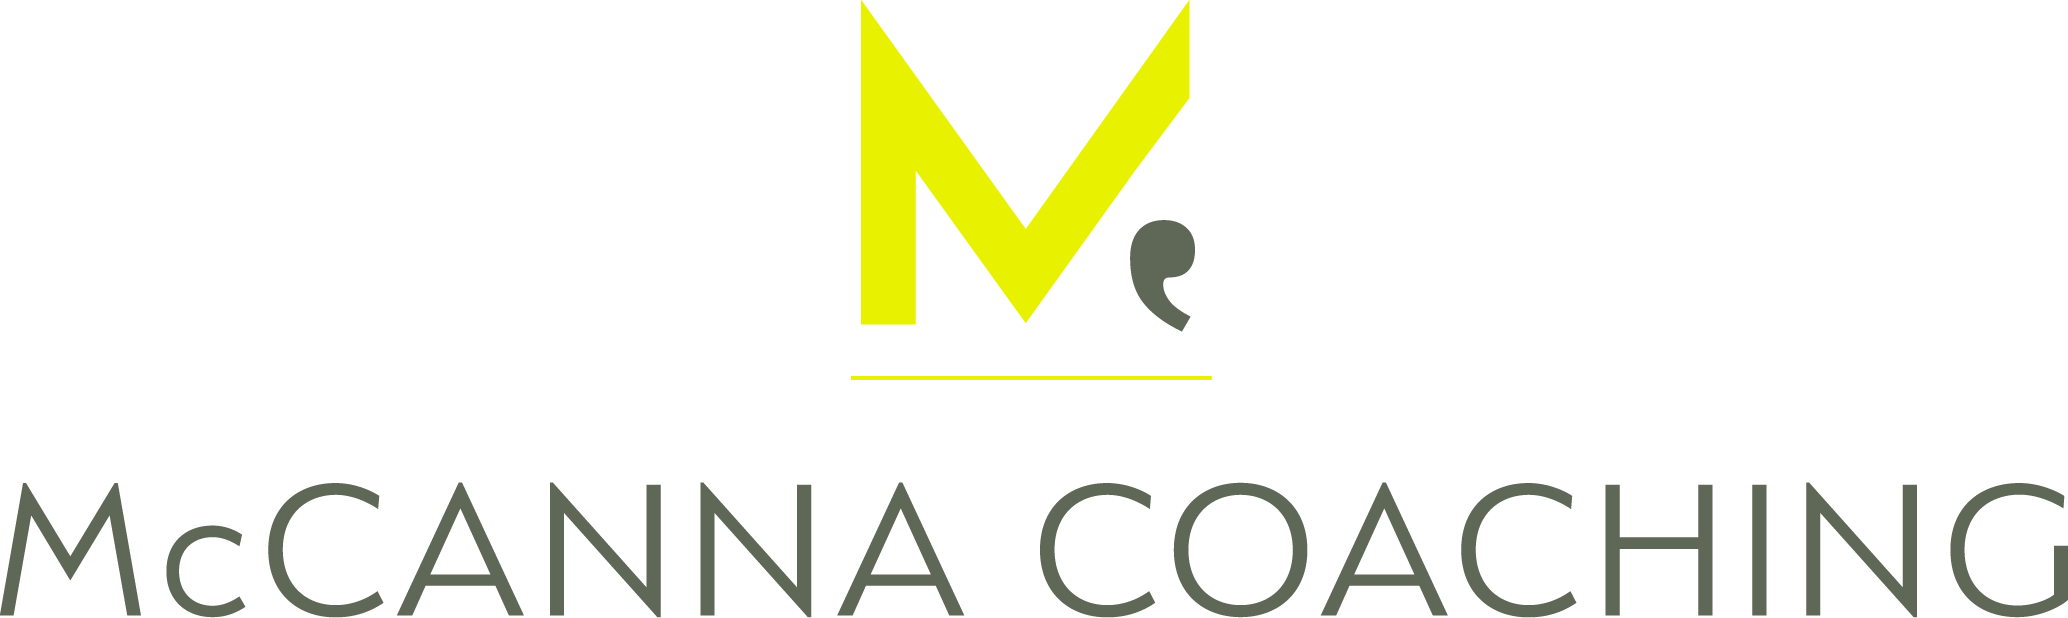 McCanna Coaching